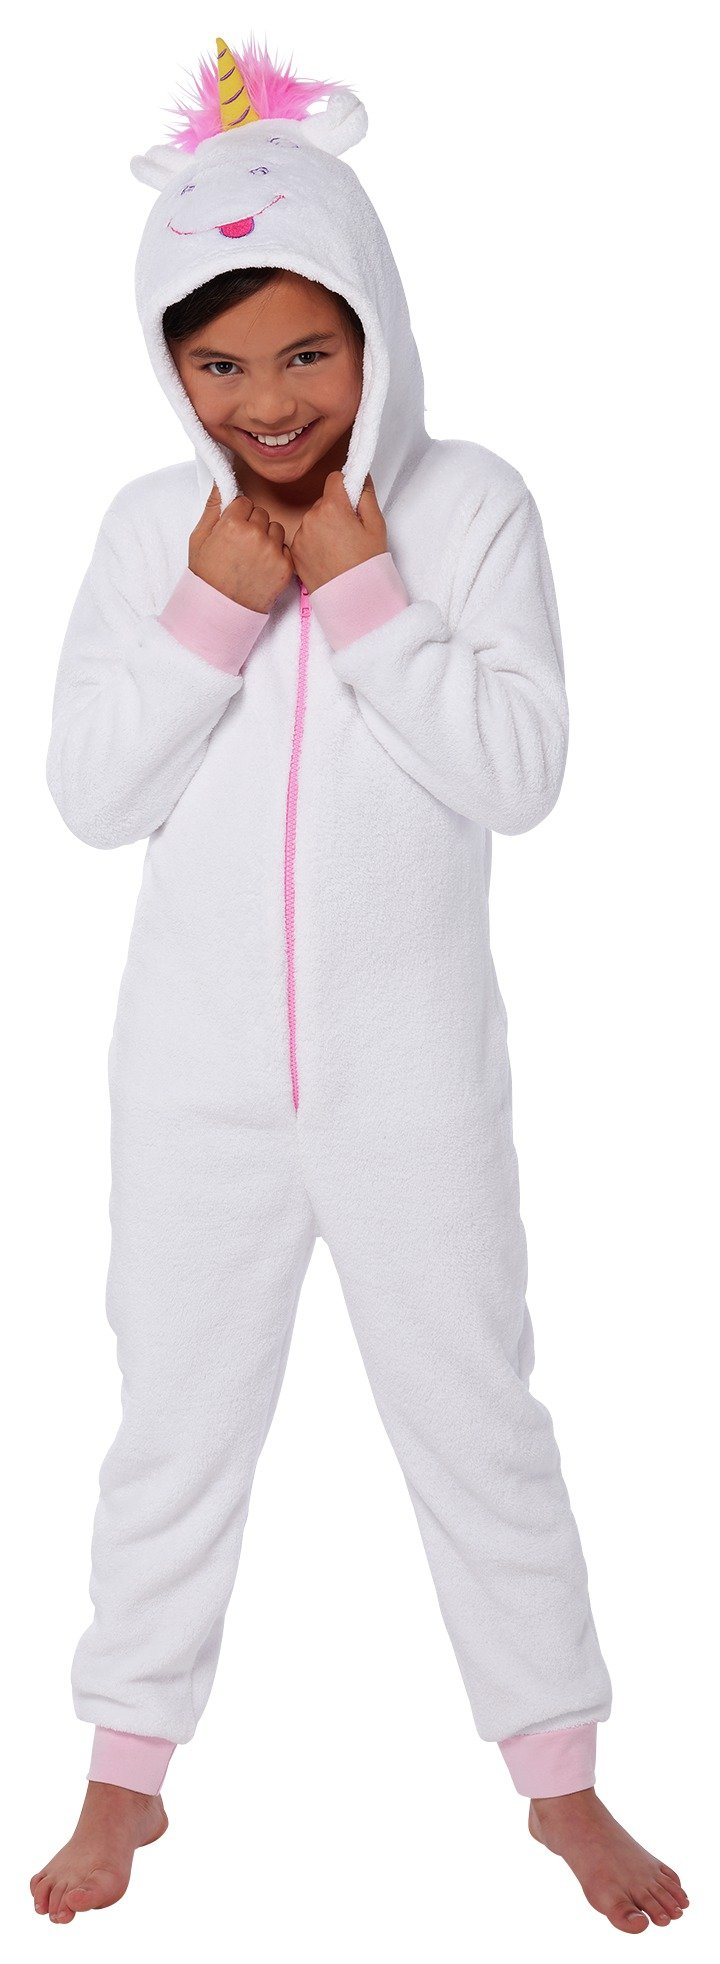 Image of Minions Fluffy Onesie - 9-10 Years